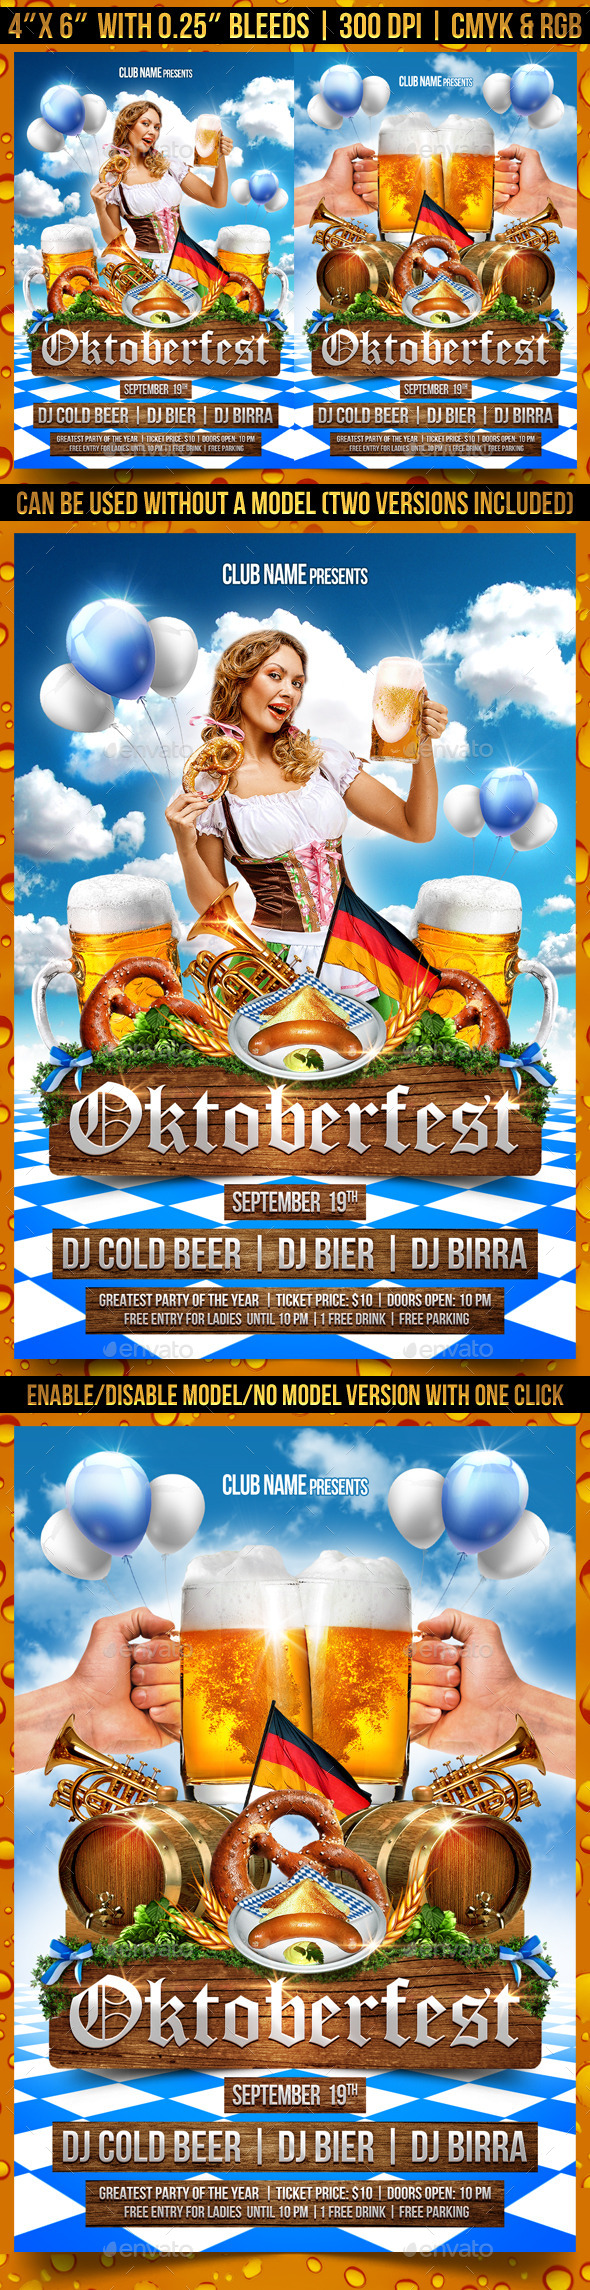 Oktoberfest Party Flyer Template - Clubs & Parties Events